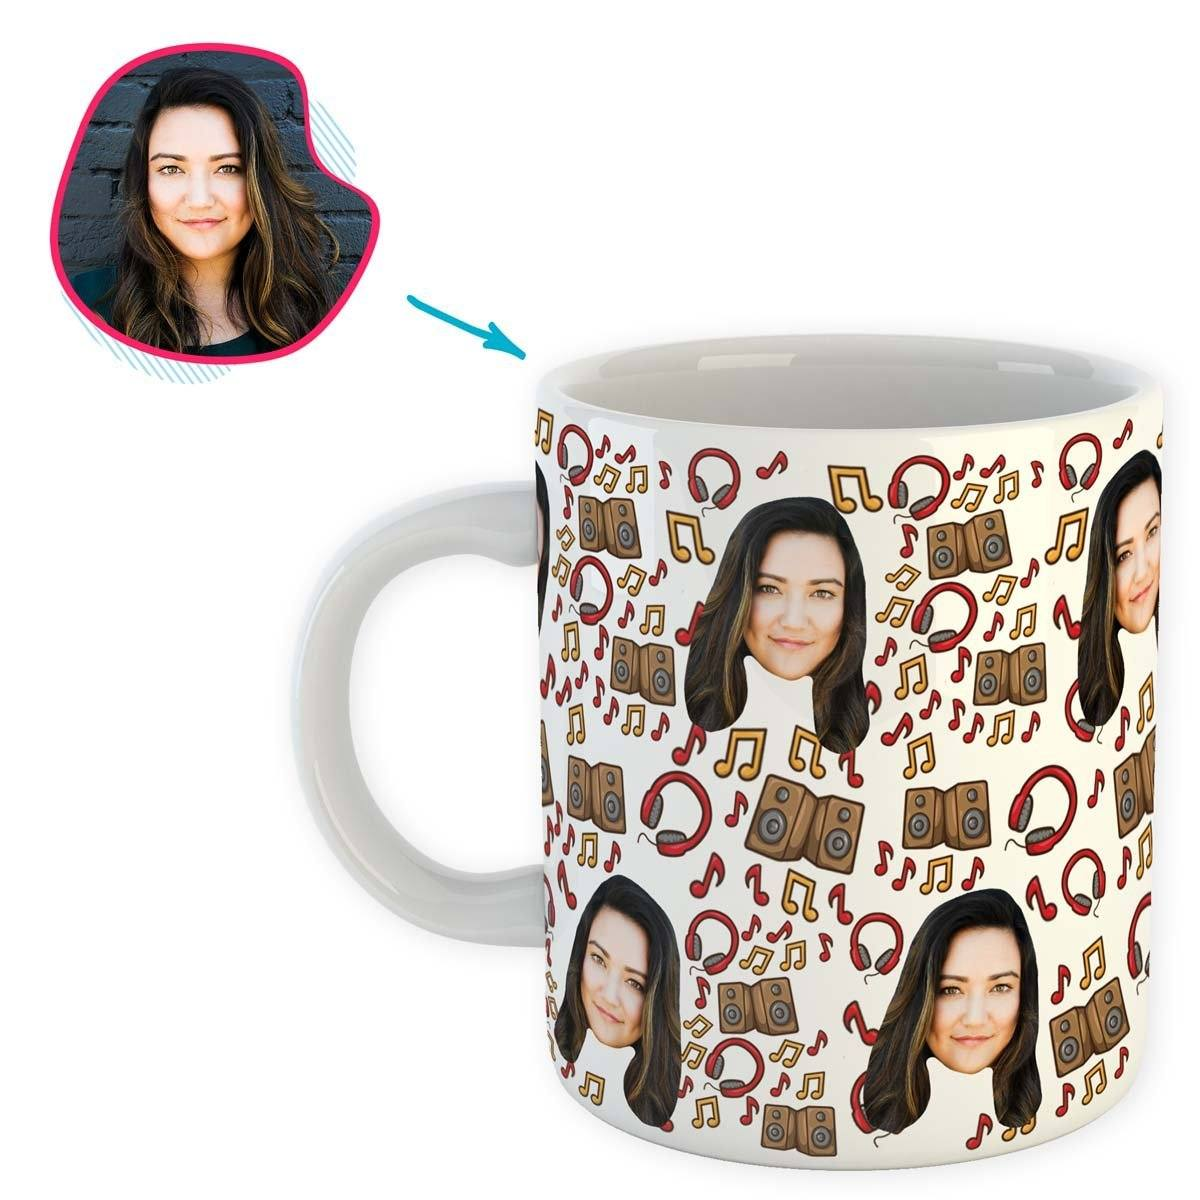 white Music mug personalized with photo of face printed on it